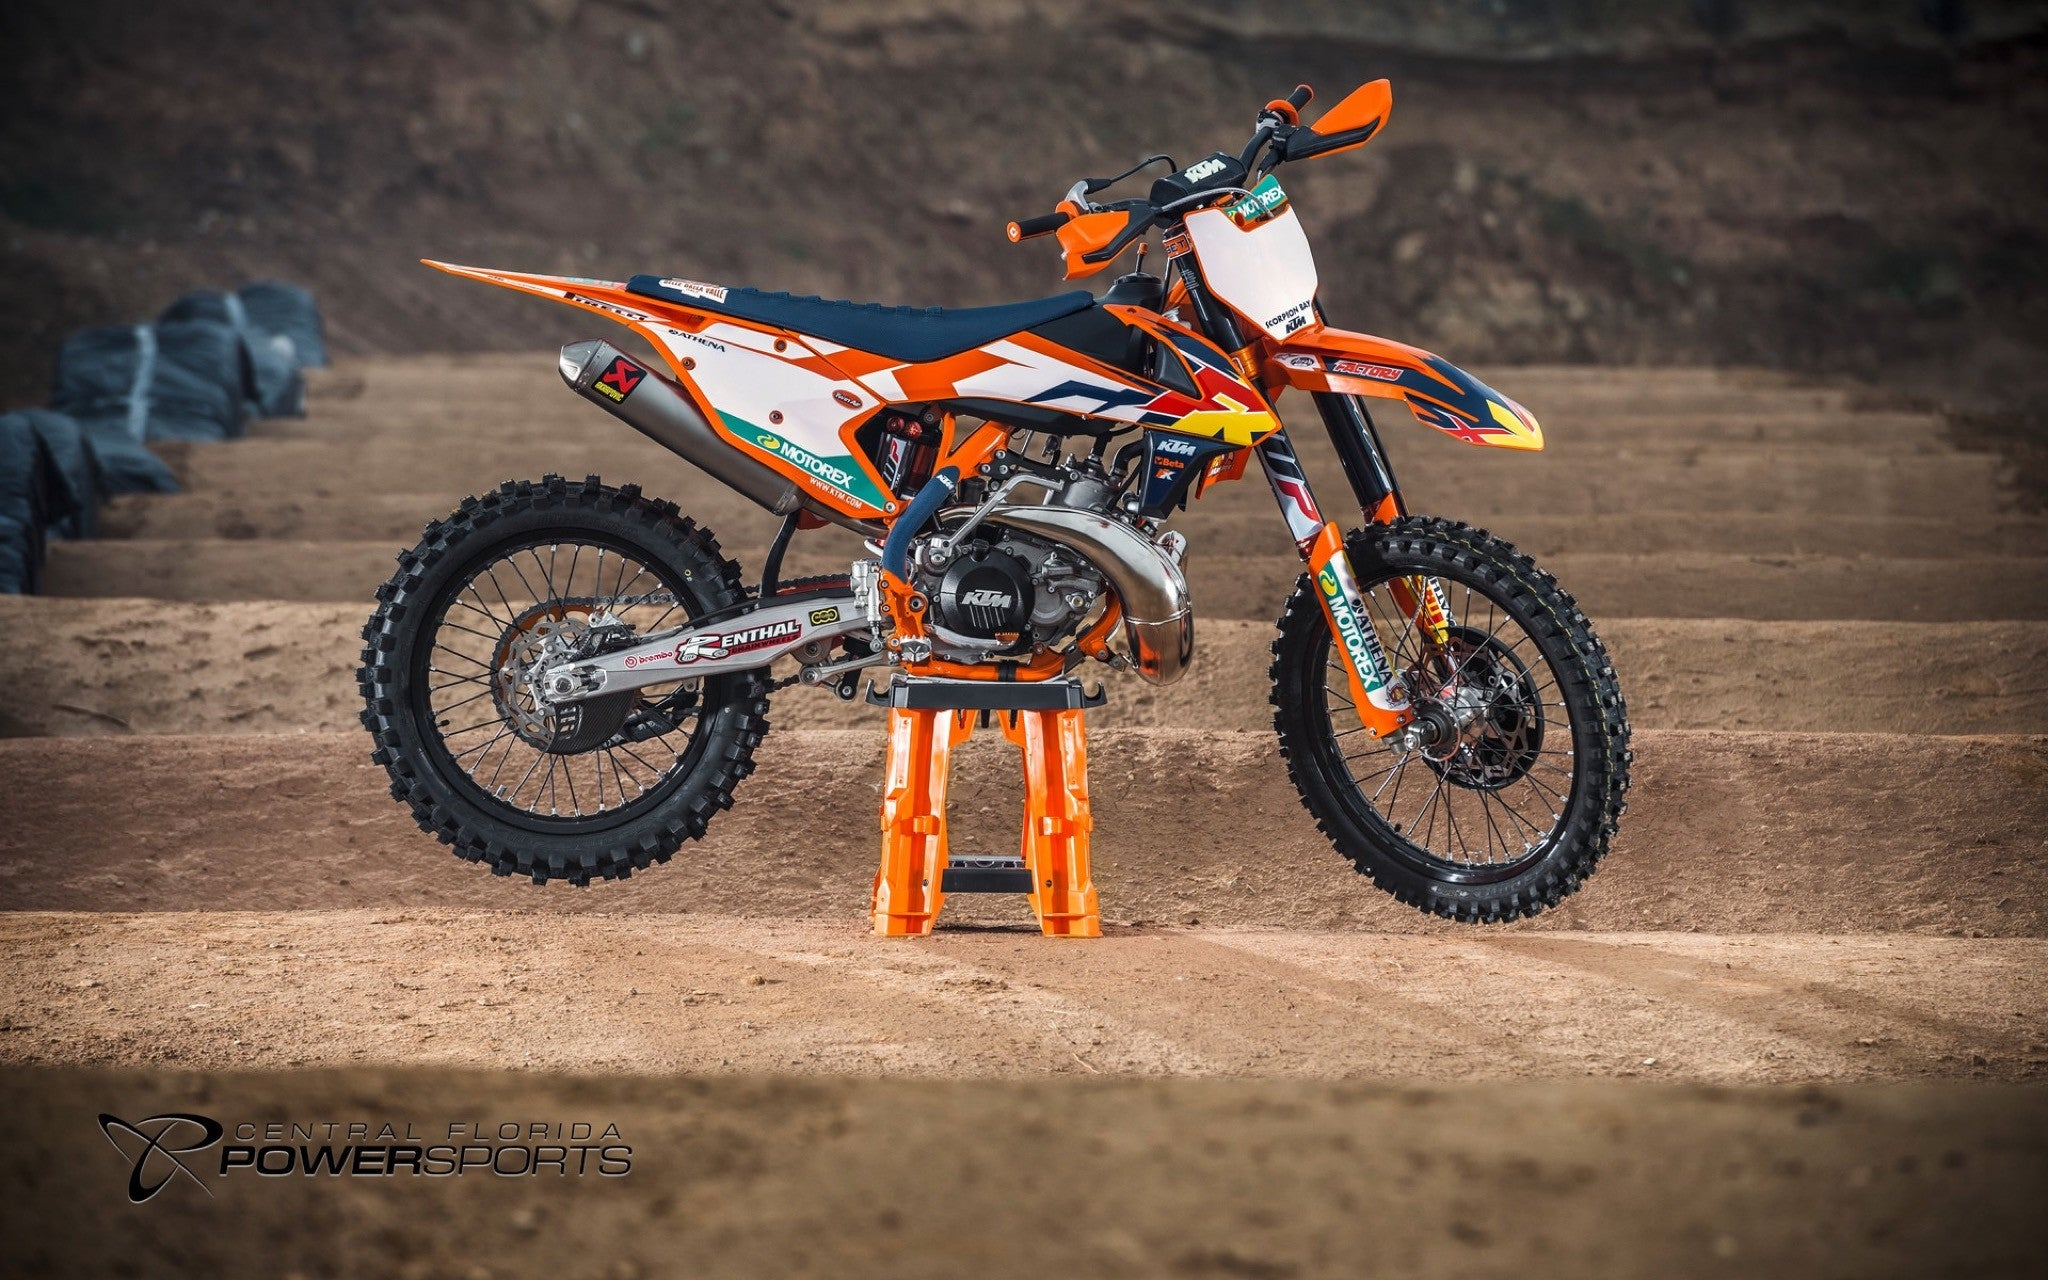 ktm  sx central florida powersports